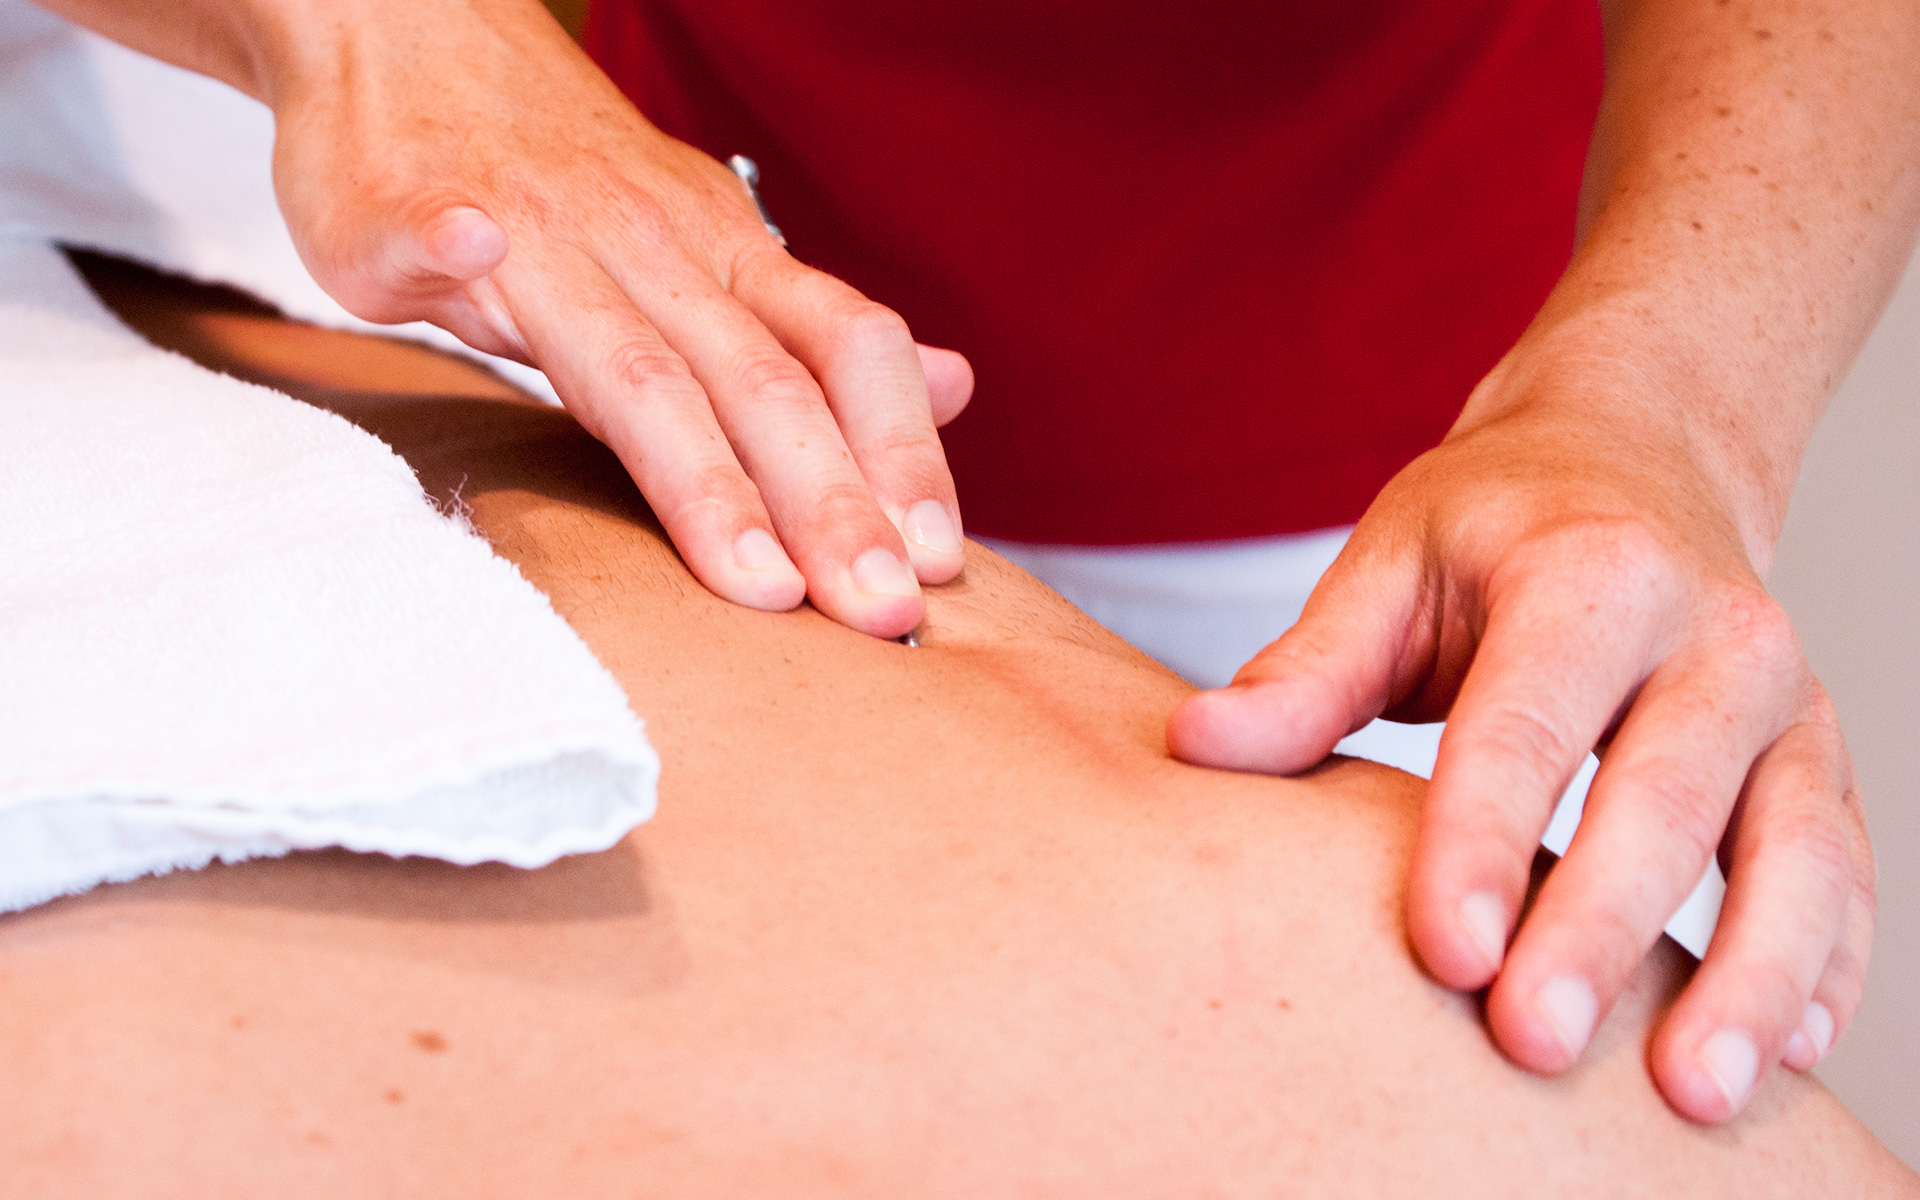 Massage-Fachpraxis Zingerle in Kaprun